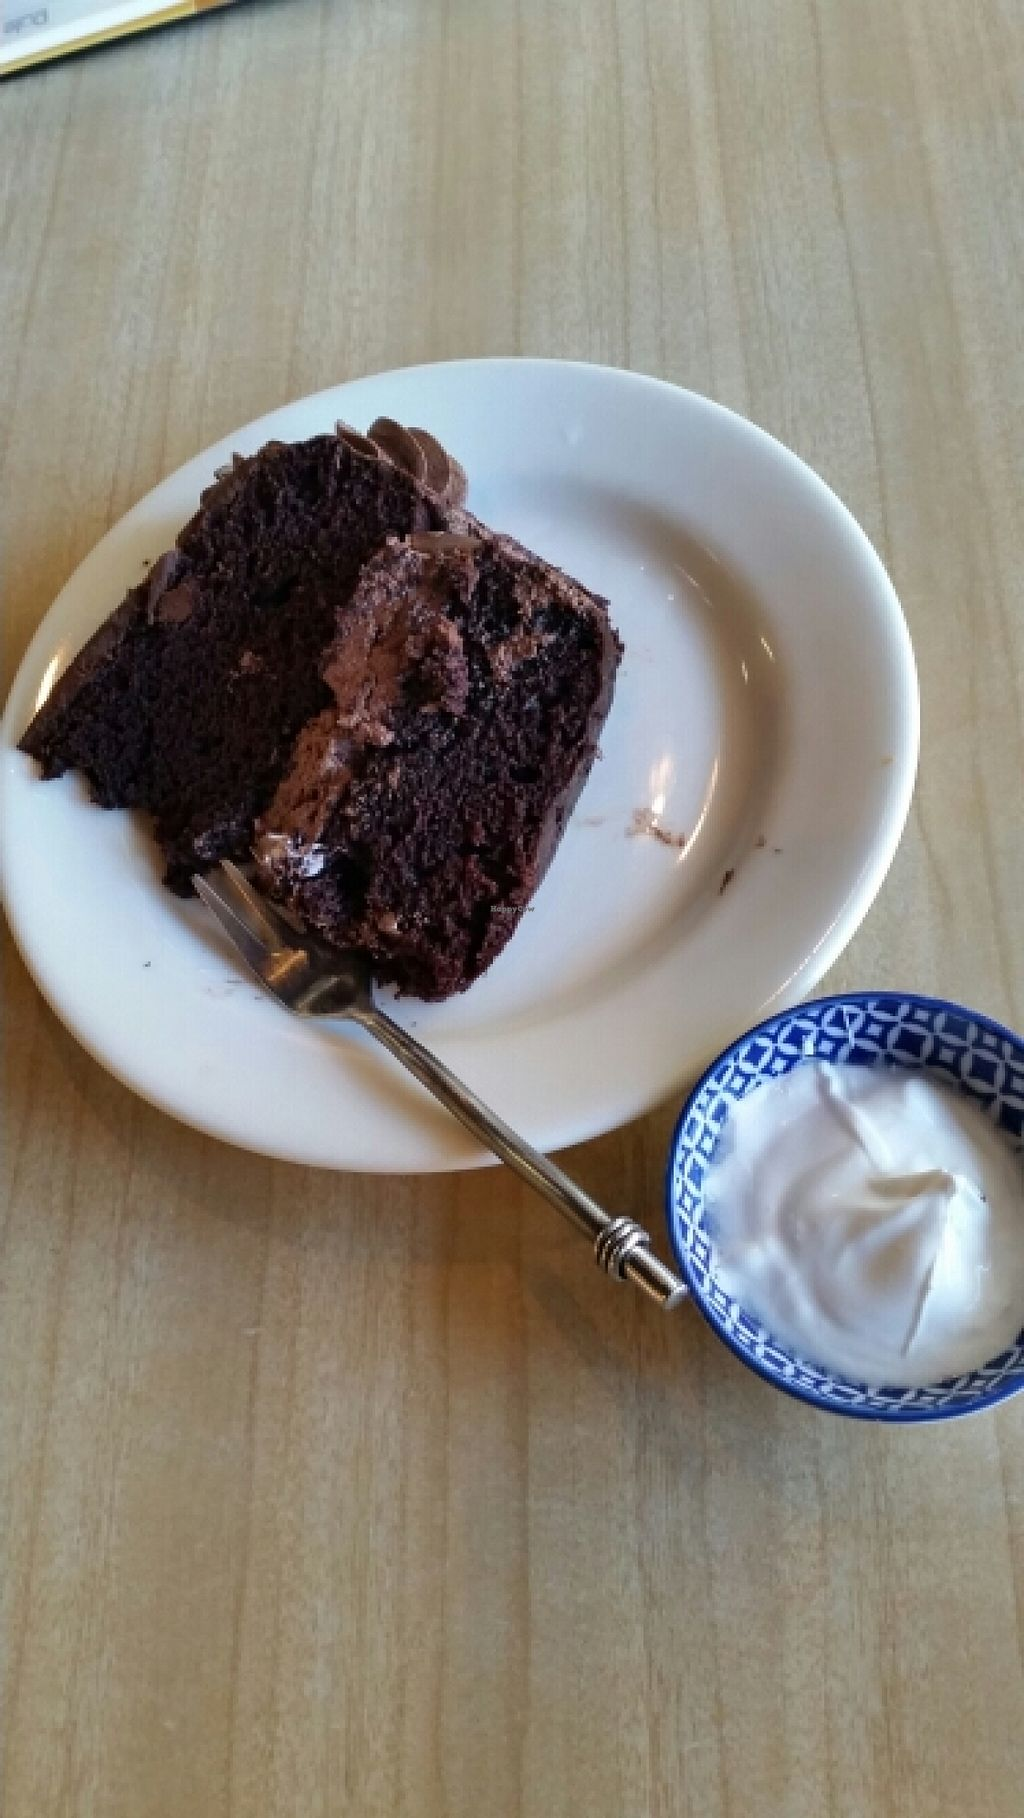 """Photo of Ritual Coffee Company  by <a href=""""/members/profile/AndyTheVWDude"""">AndyTheVWDude</a> <br/>Vegan chocolate cake & coconut yoghurt <br/> April 19, 2016  - <a href='/contact/abuse/image/68847/145381'>Report</a>"""